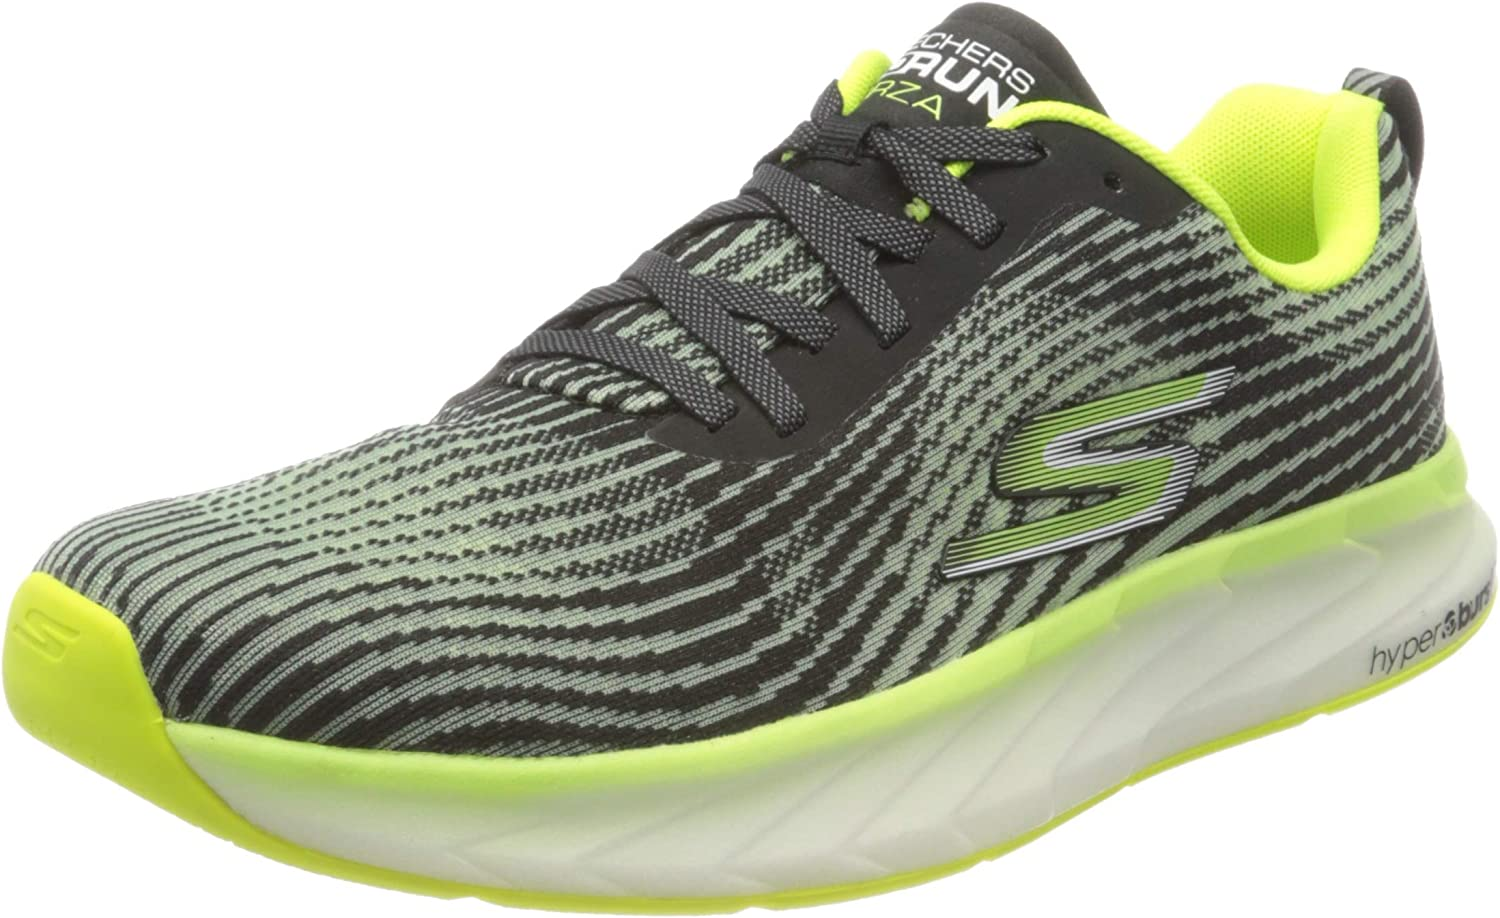 Men's Skechers GOrun Forza 3